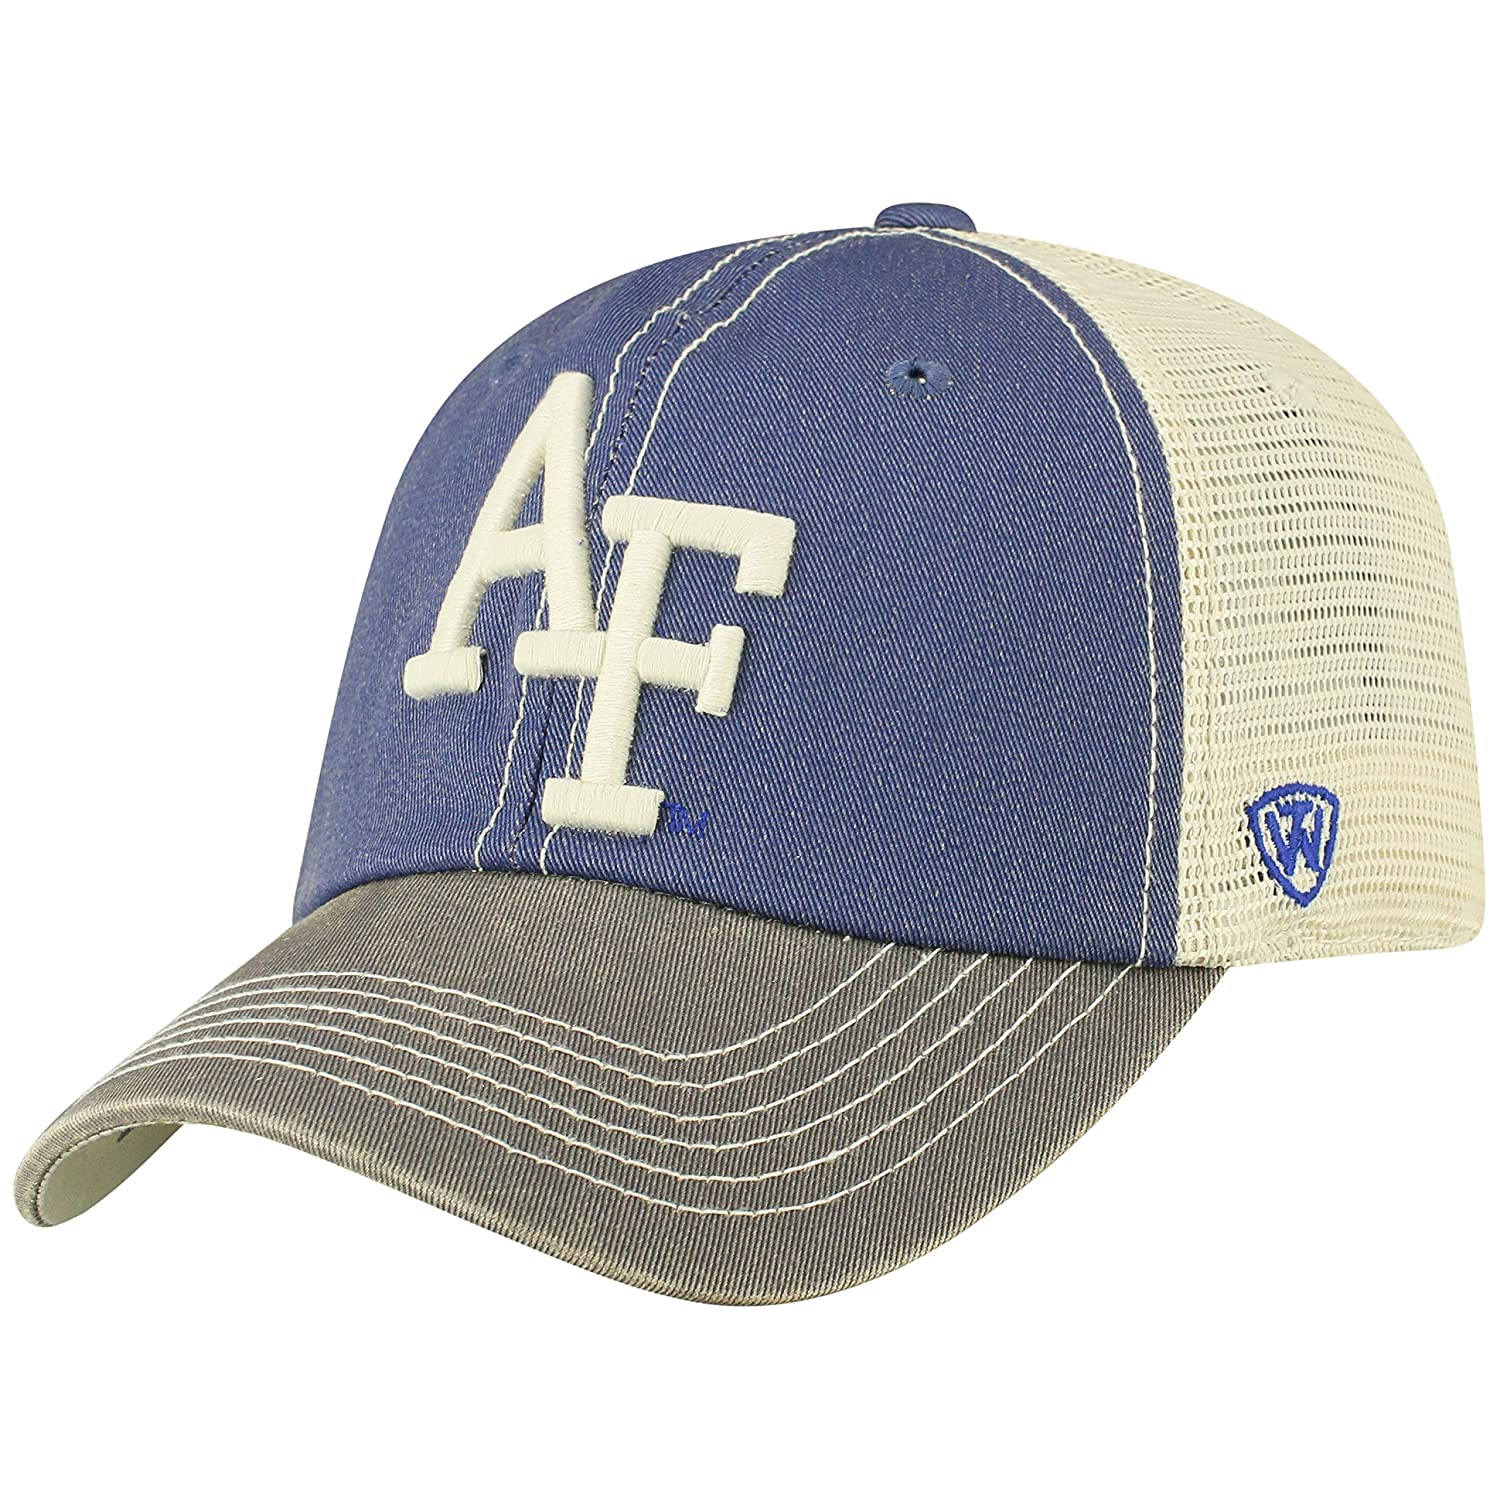 half off 42b68 21438 Amazon.com   Top of the World Adult Unisex s Offroad Snapback Mesh Back Adjustable  Hat, Air Force Falcons Royal, One Size   Clothing